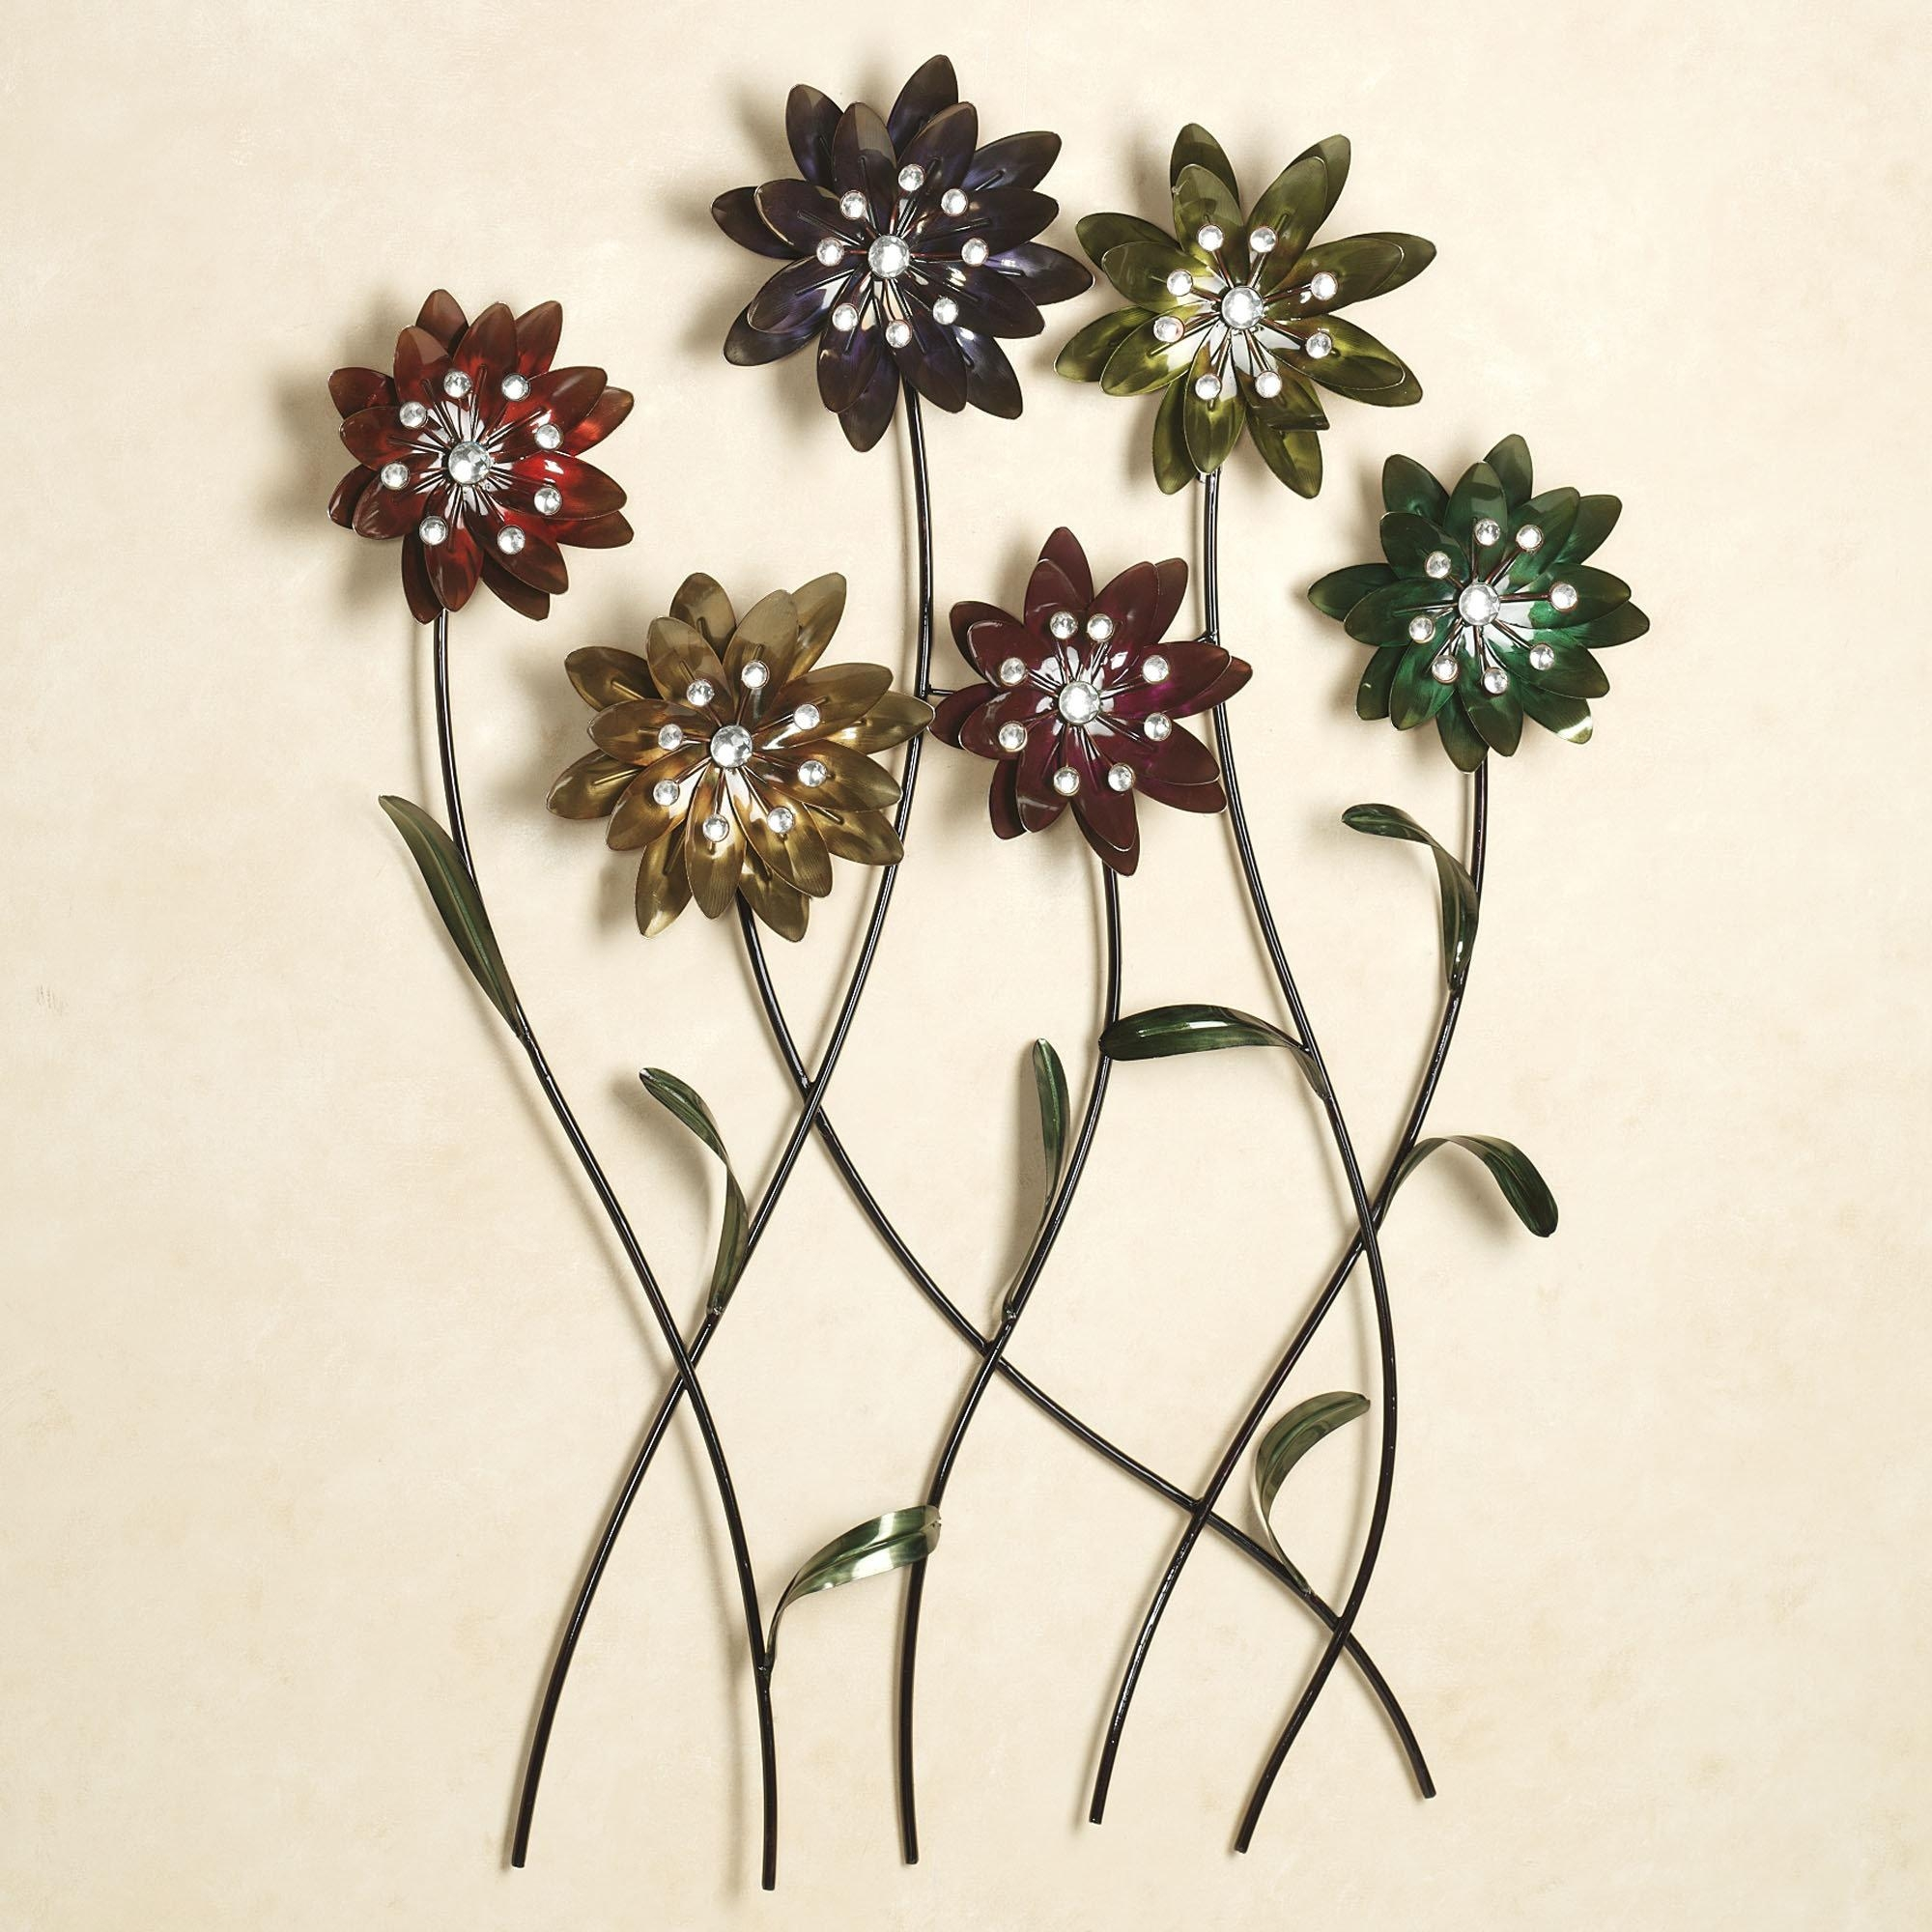 Metal Flowers Wall Art Pic Photo Metal Flower Wall Art – Home Within Silver Metal Wall Art Flowers (View 10 of 20)